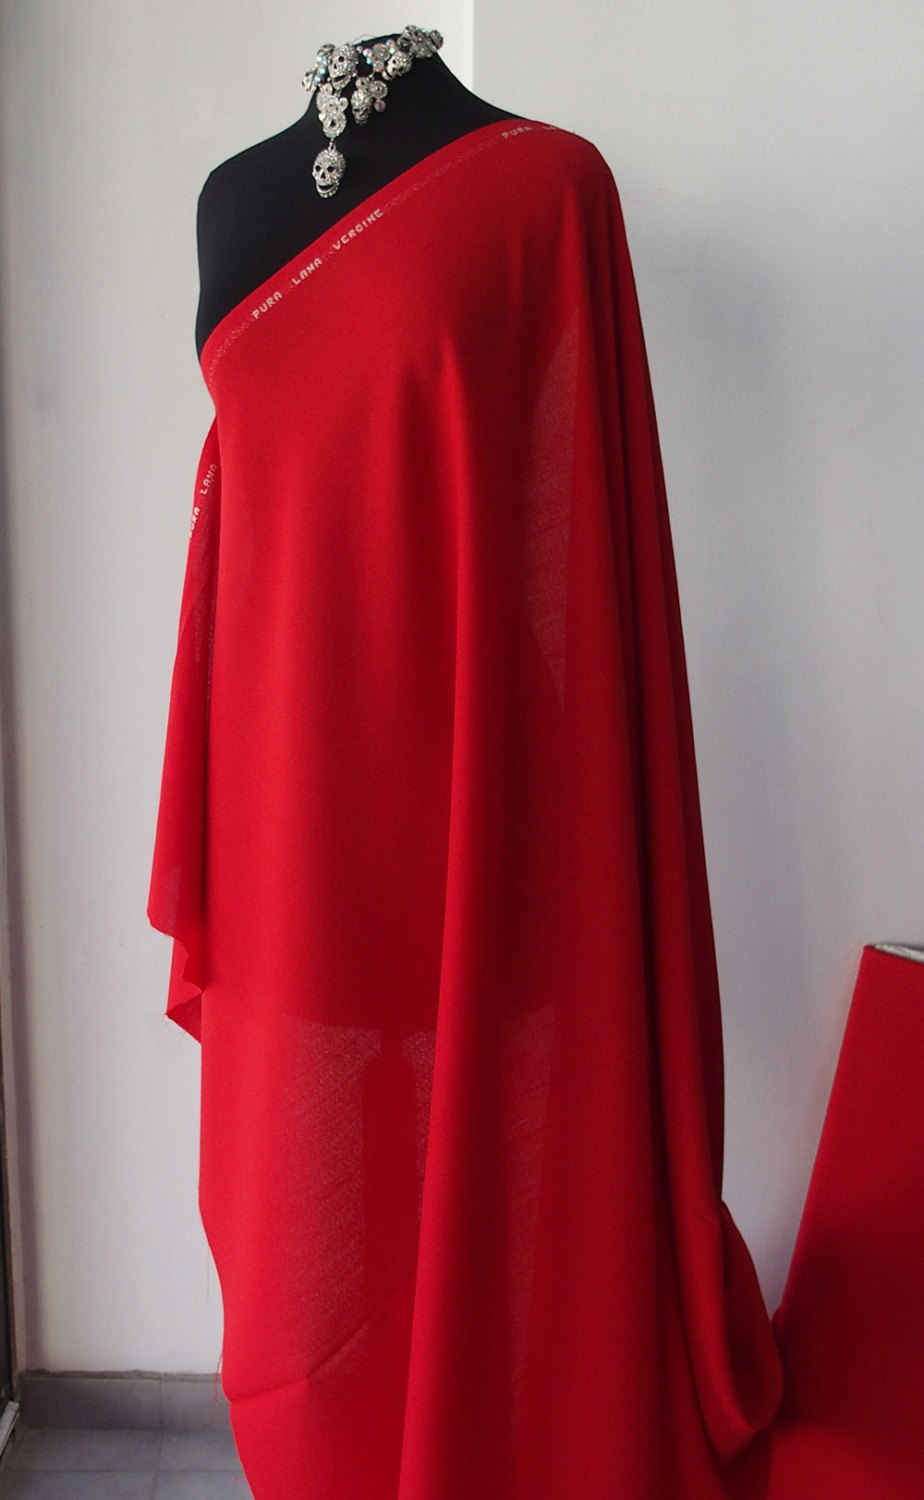 Wool Crepe Fabric Red 100 Wool Made In Italy Woven